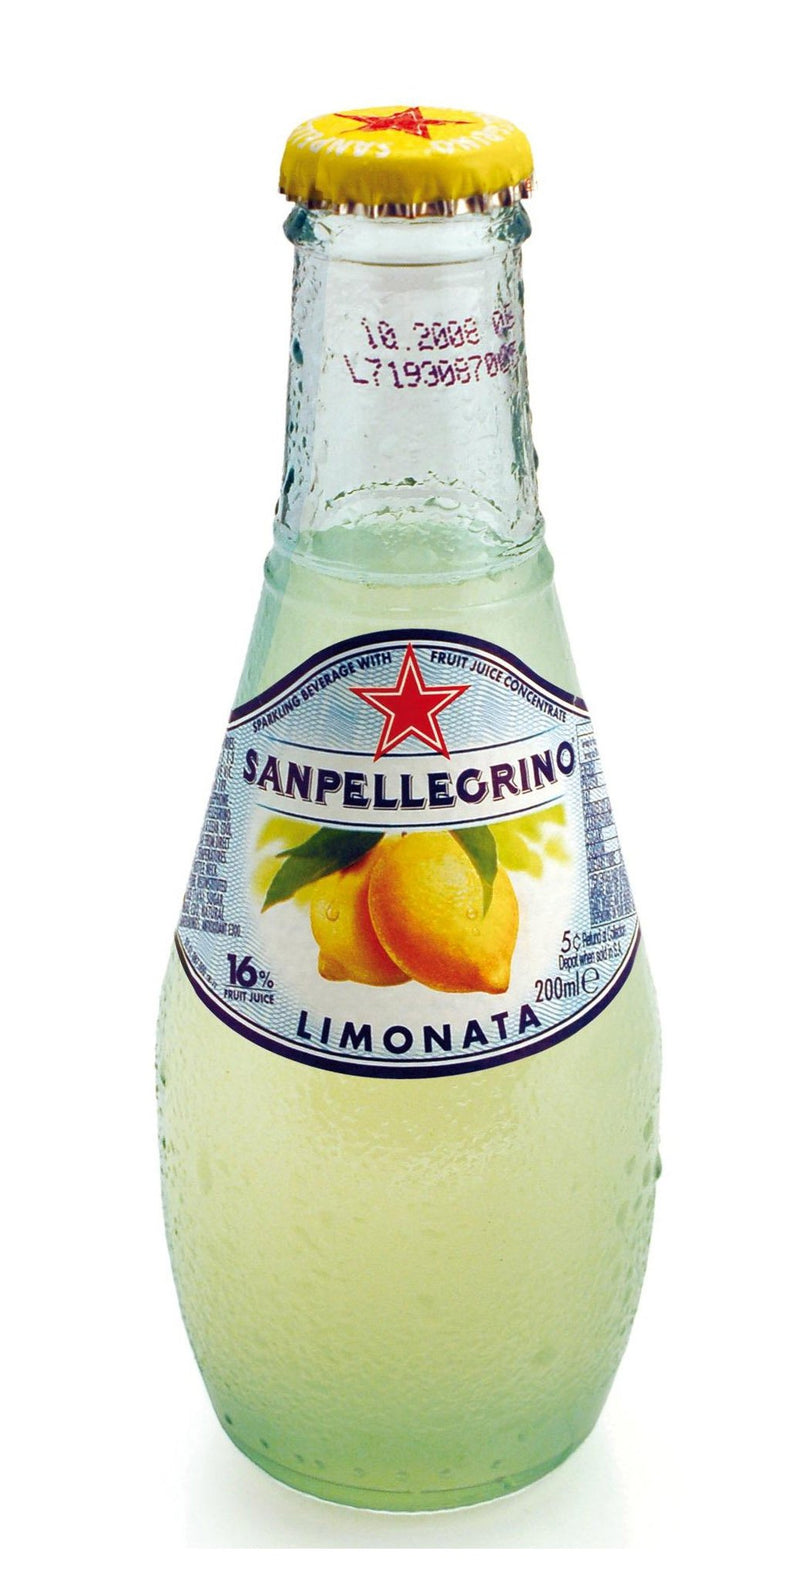 San Pellegrino Limonata 6.75 fl oz Glass